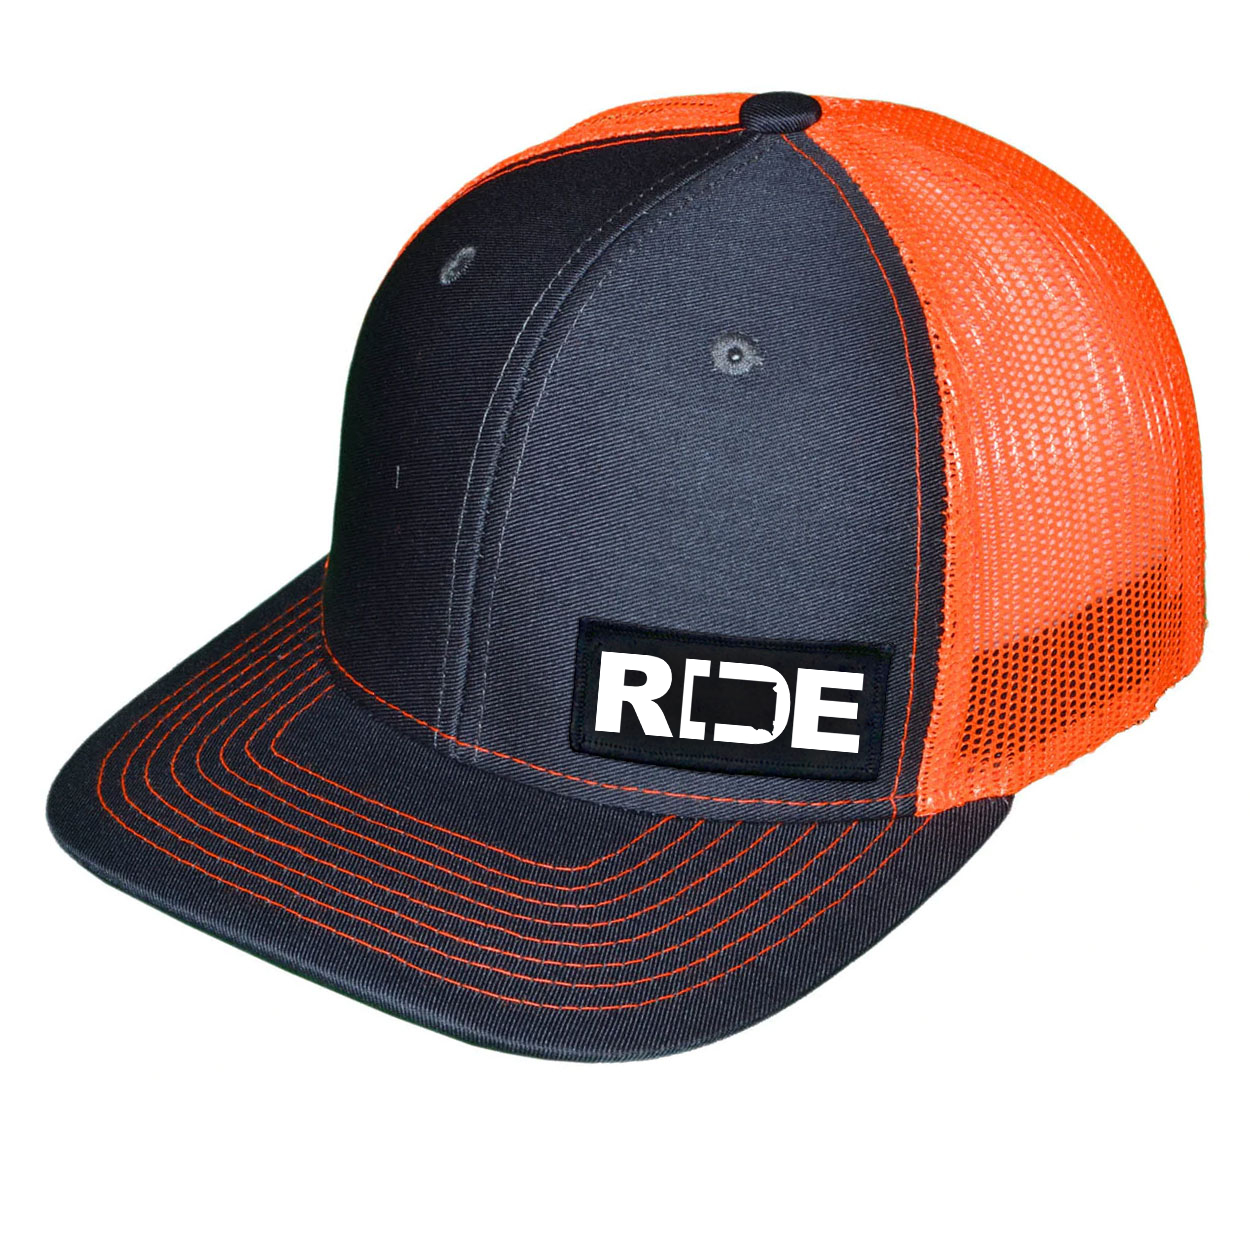 Ride South Dakota Night Out Woven Patch Snapback Trucker Hat Dark Gray/Orange (White Logo)